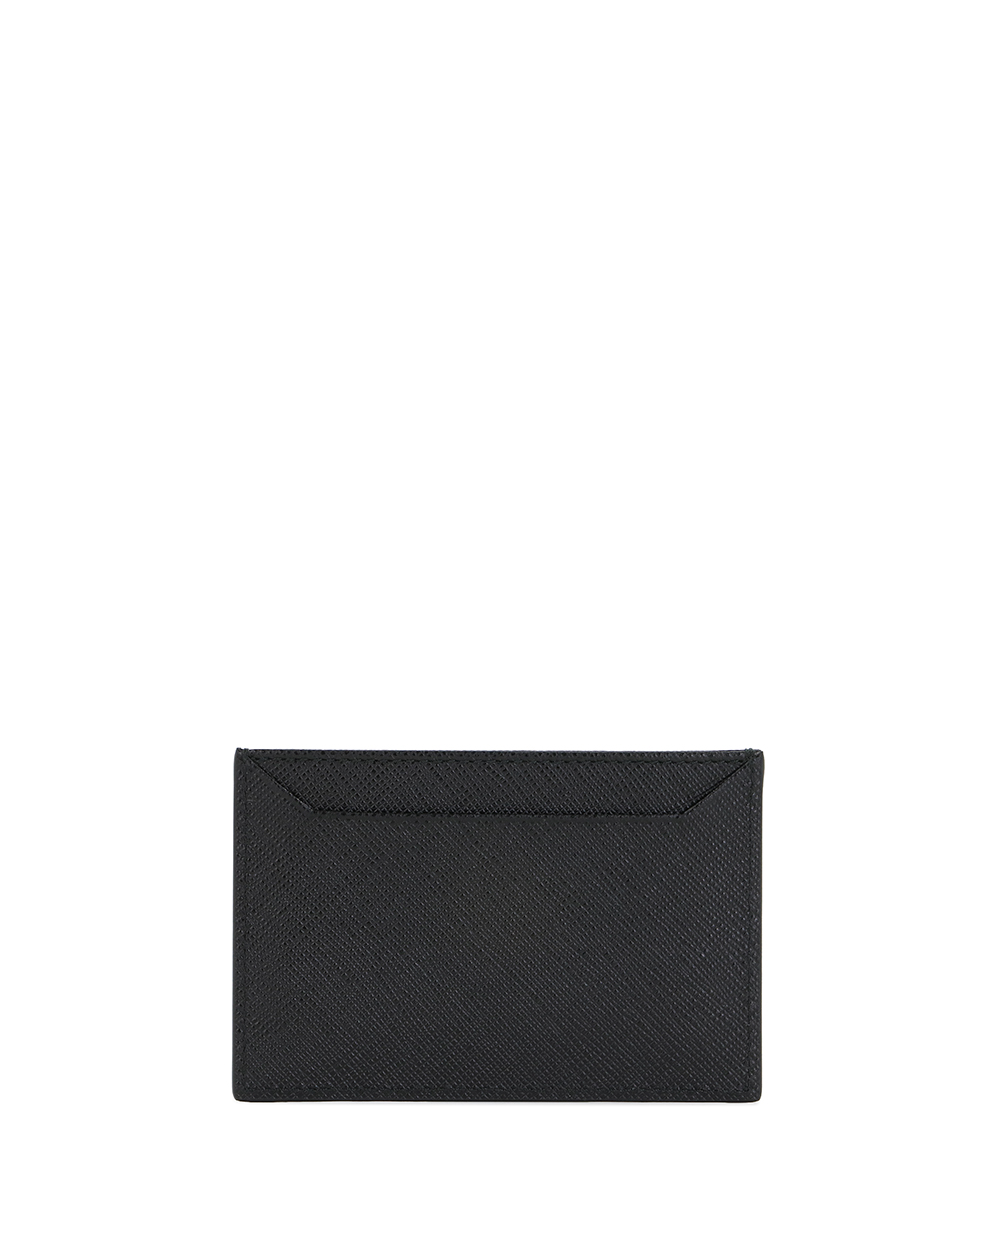 Saffiano Leather Card Holder 2